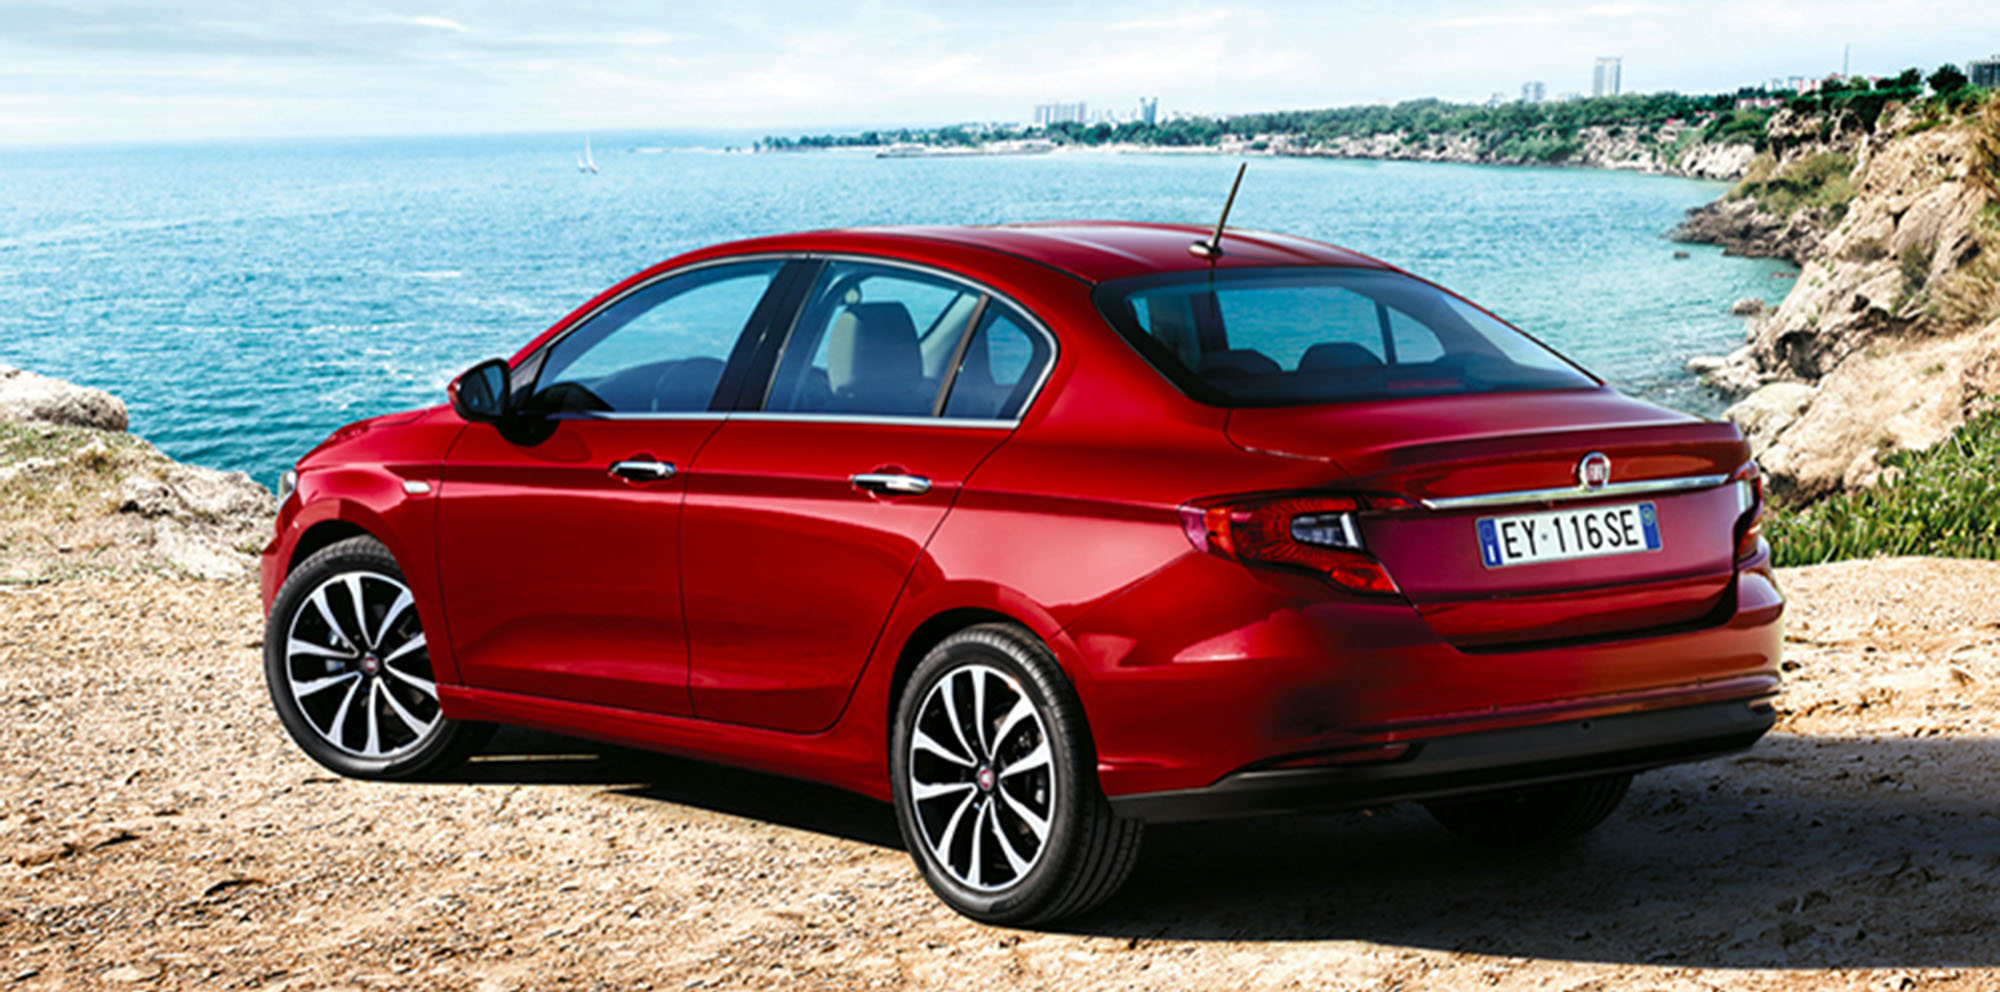 Fiat Tipo Will Be Available In Sedan, Hatch And Wagon